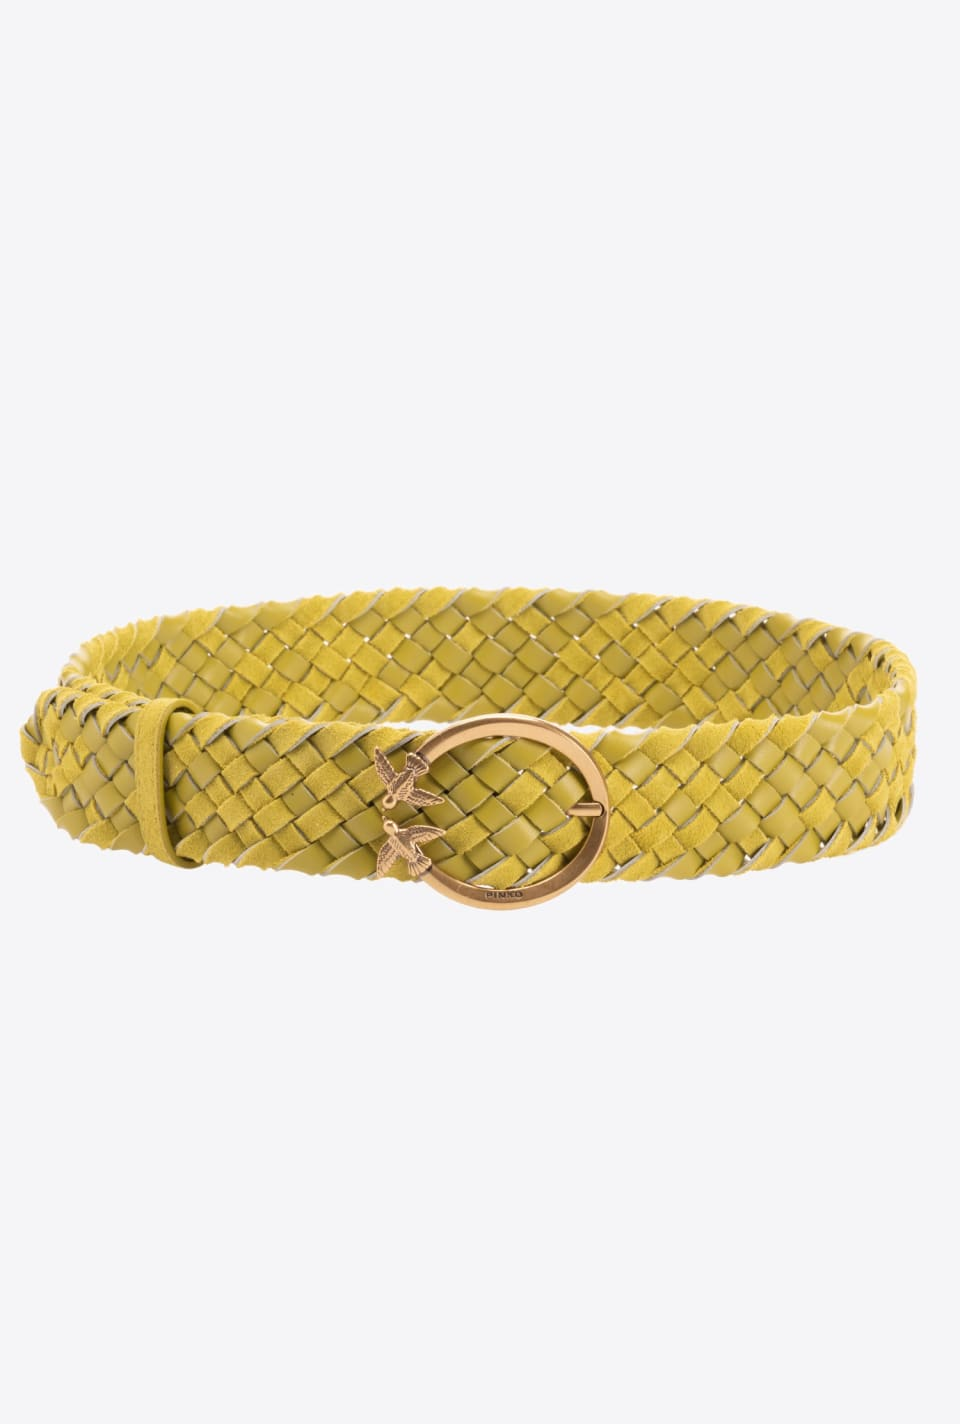 Braided suede Love Birds belt - Pinko